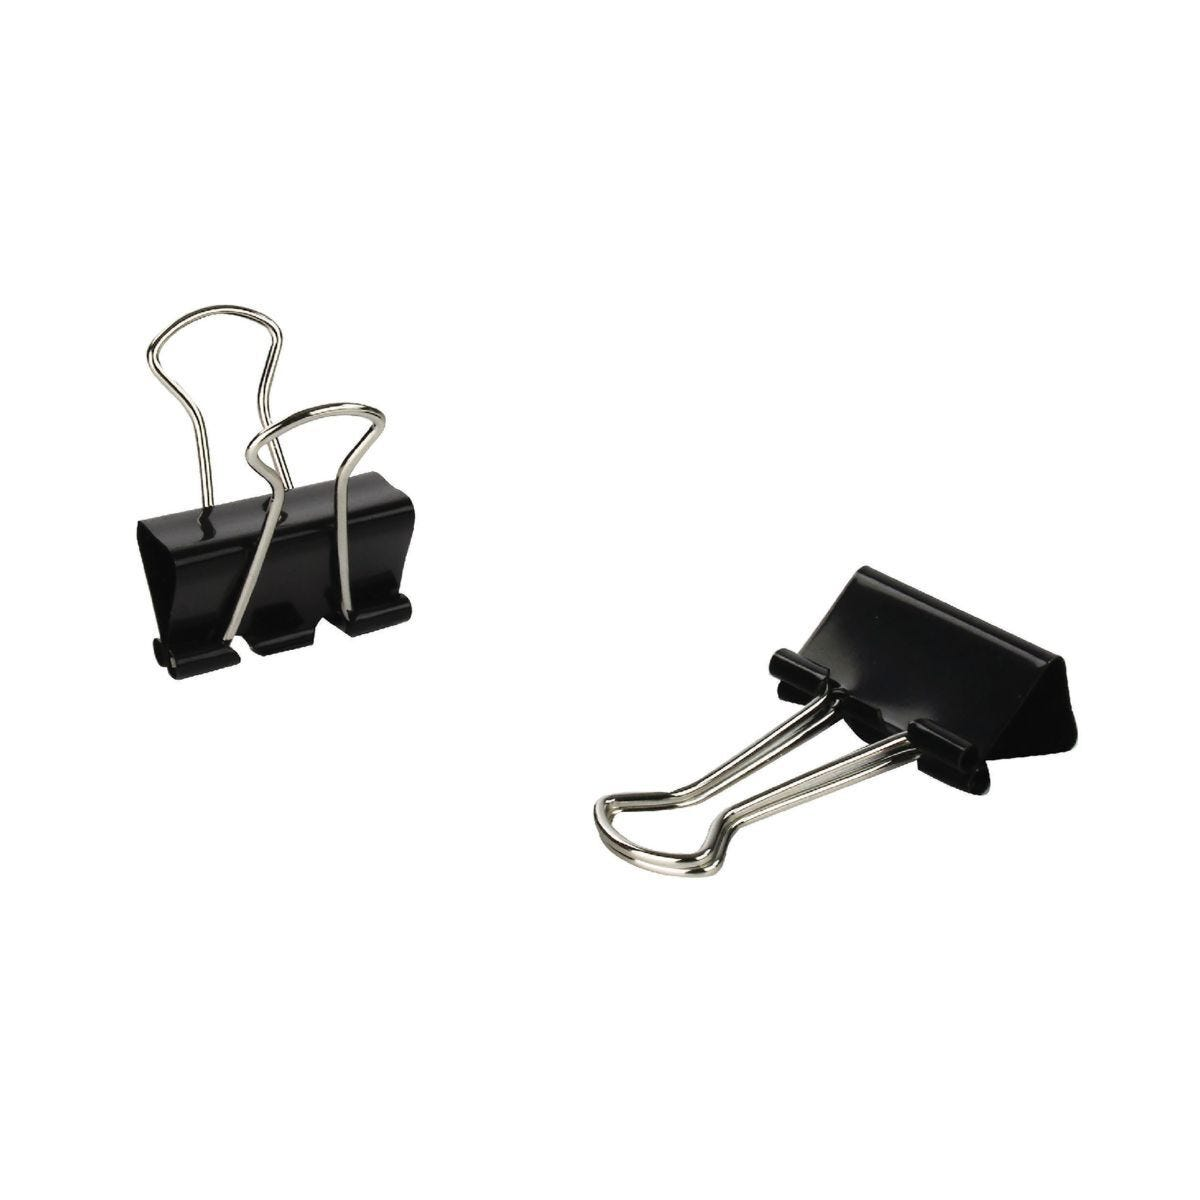 Q-Connect Foldback Clip 24mm Pack of 10